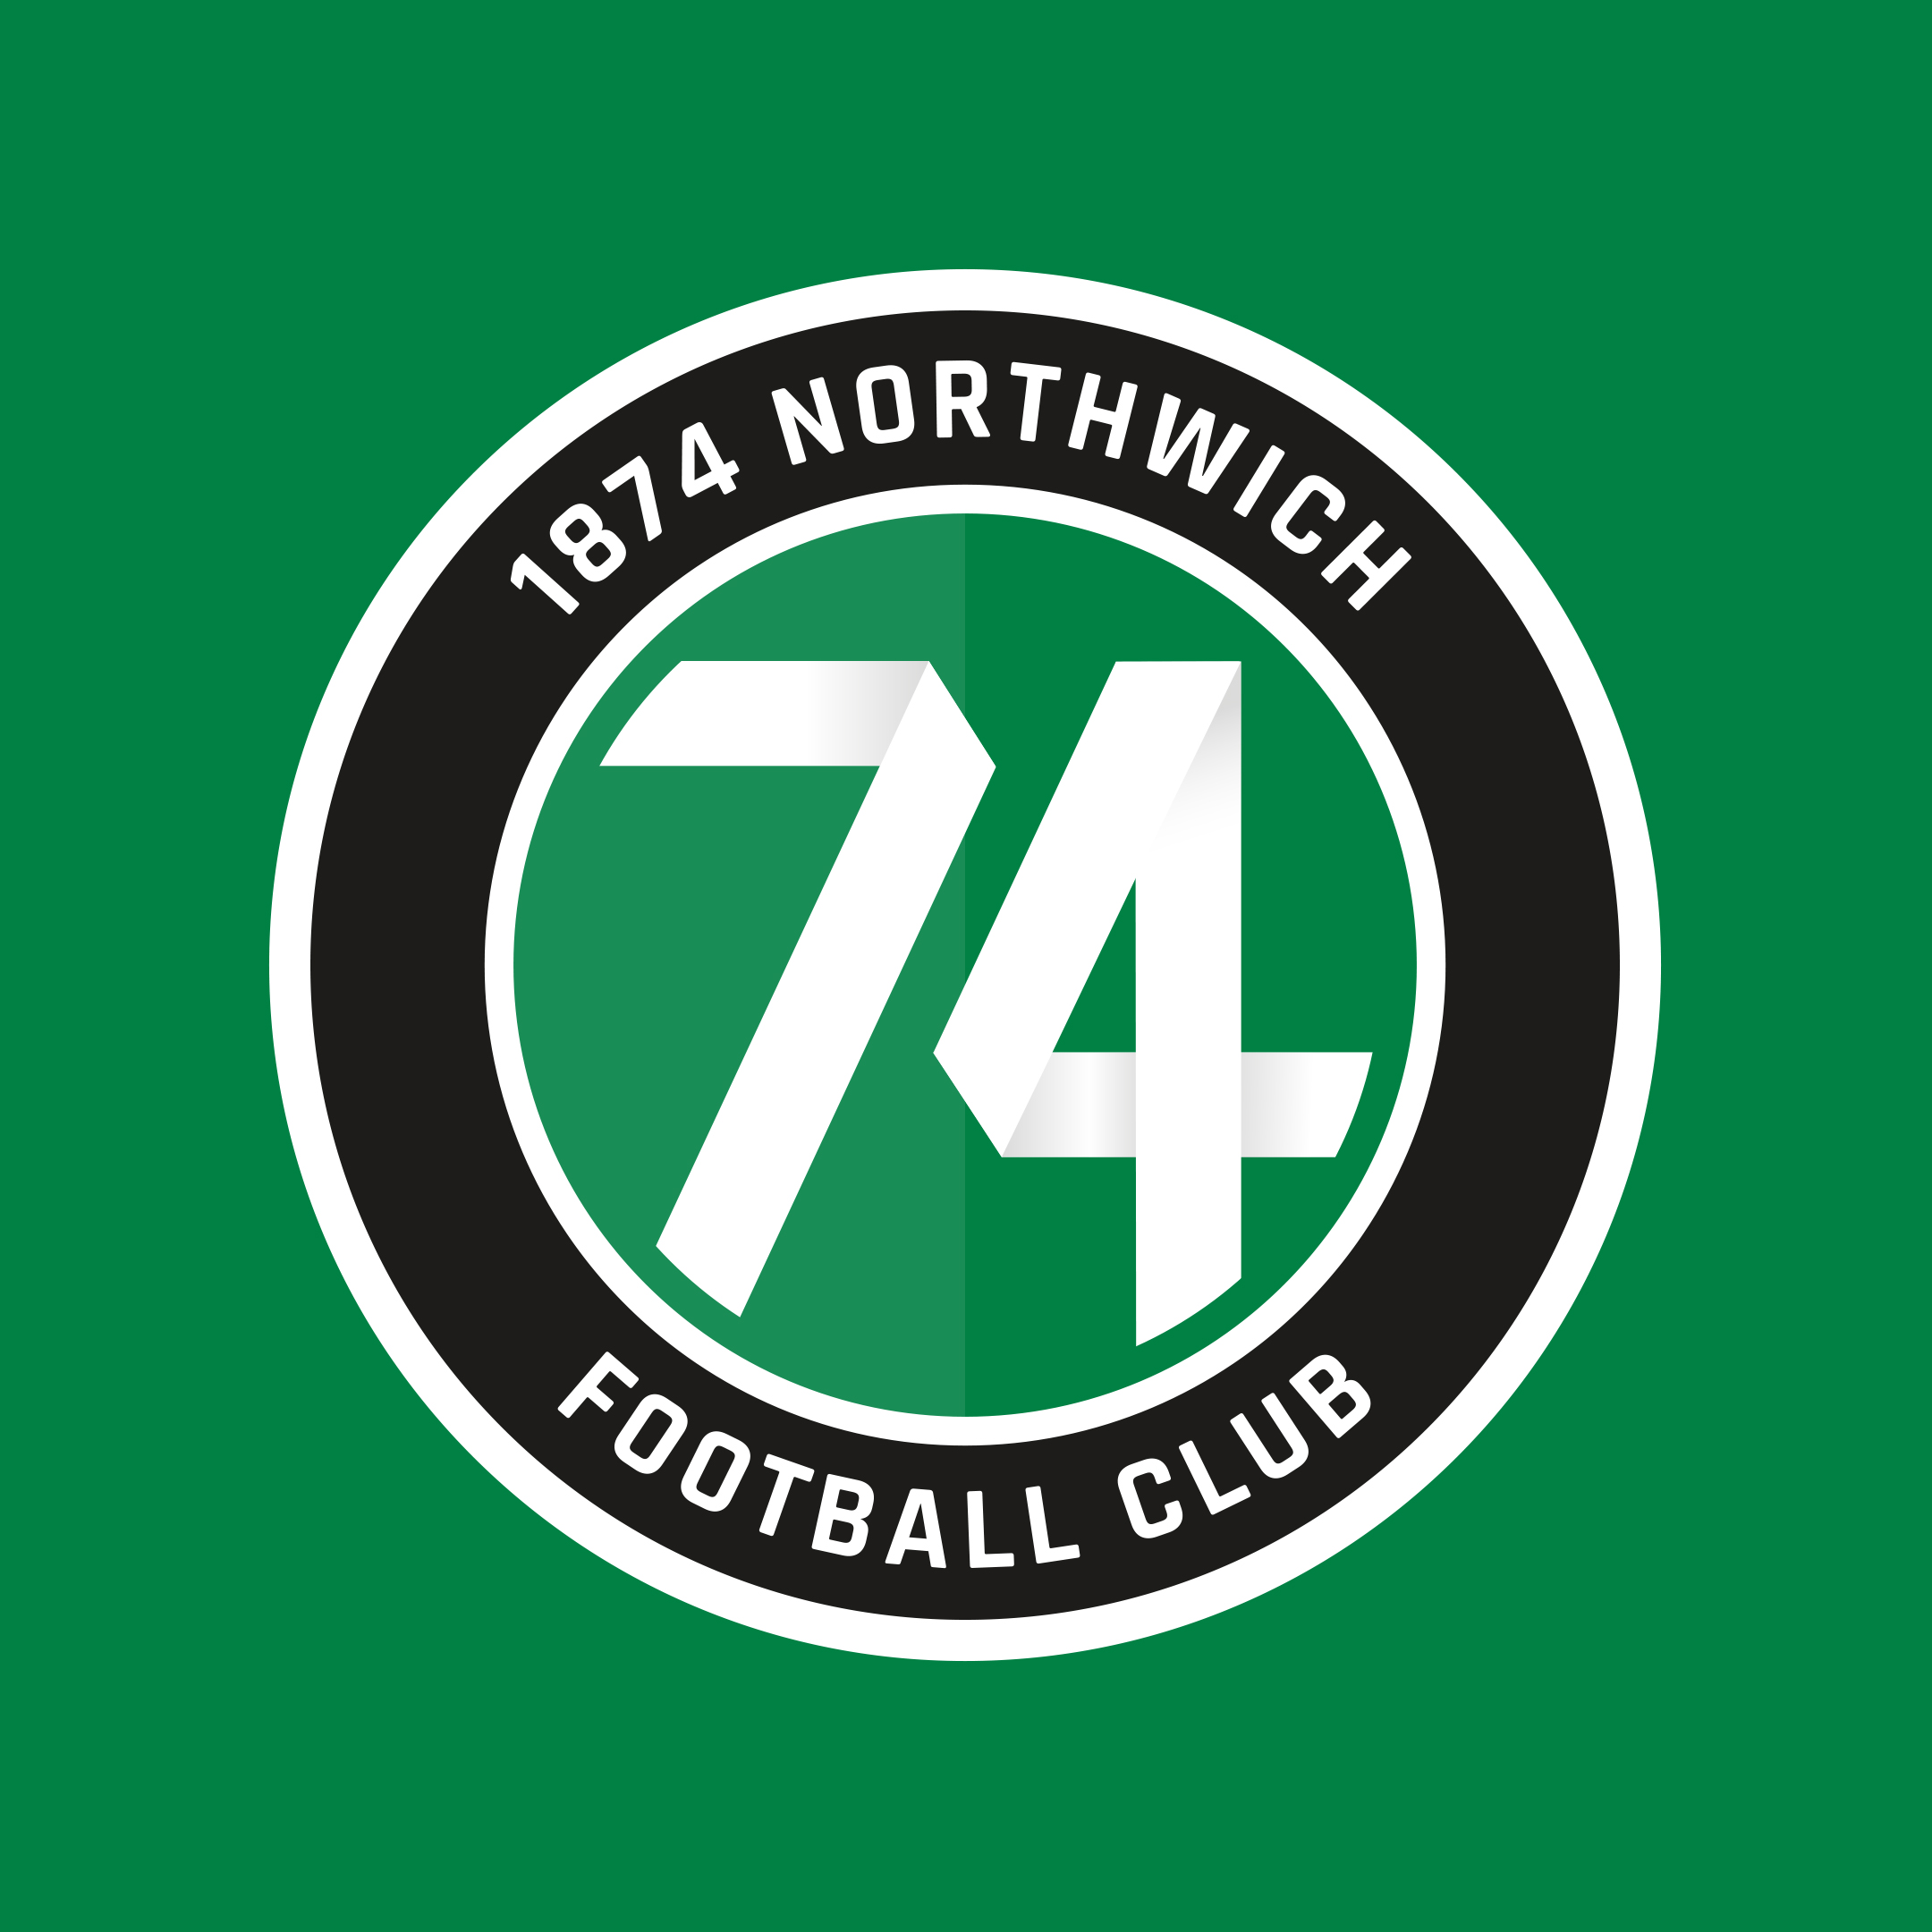 1874 Northwich crest and branding by Ben Clark Design